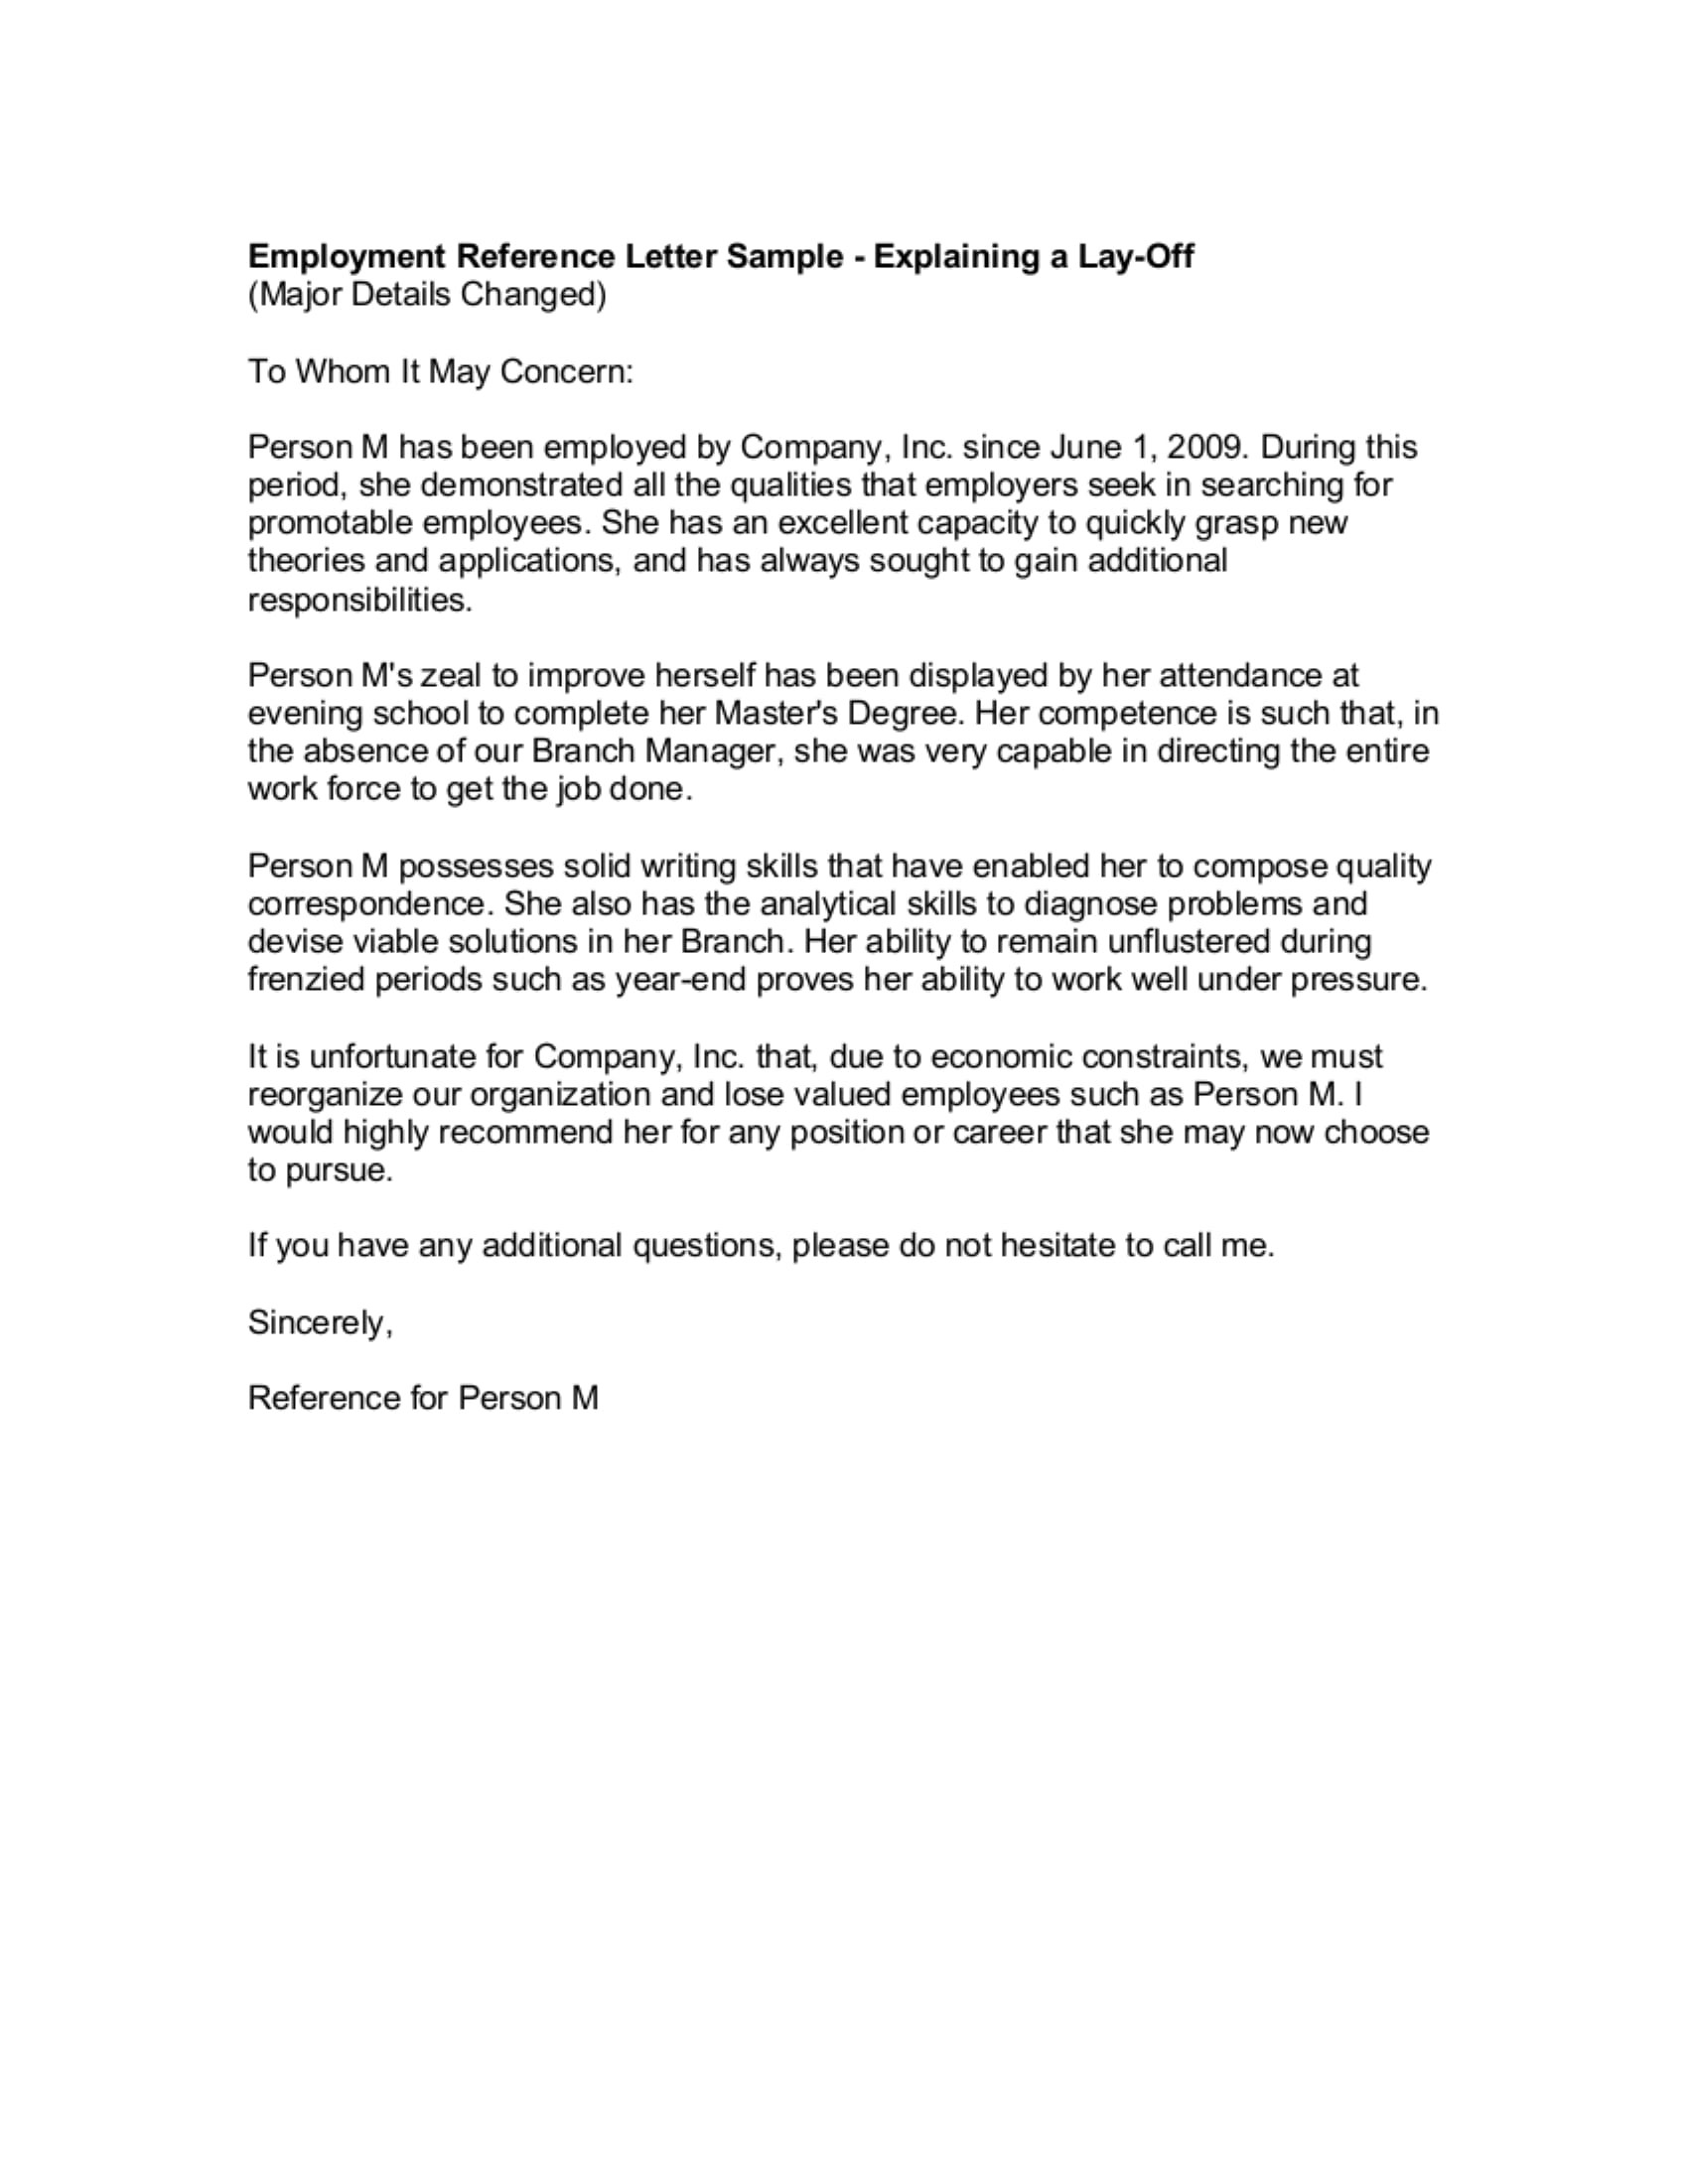 Employment Reference Letter Template